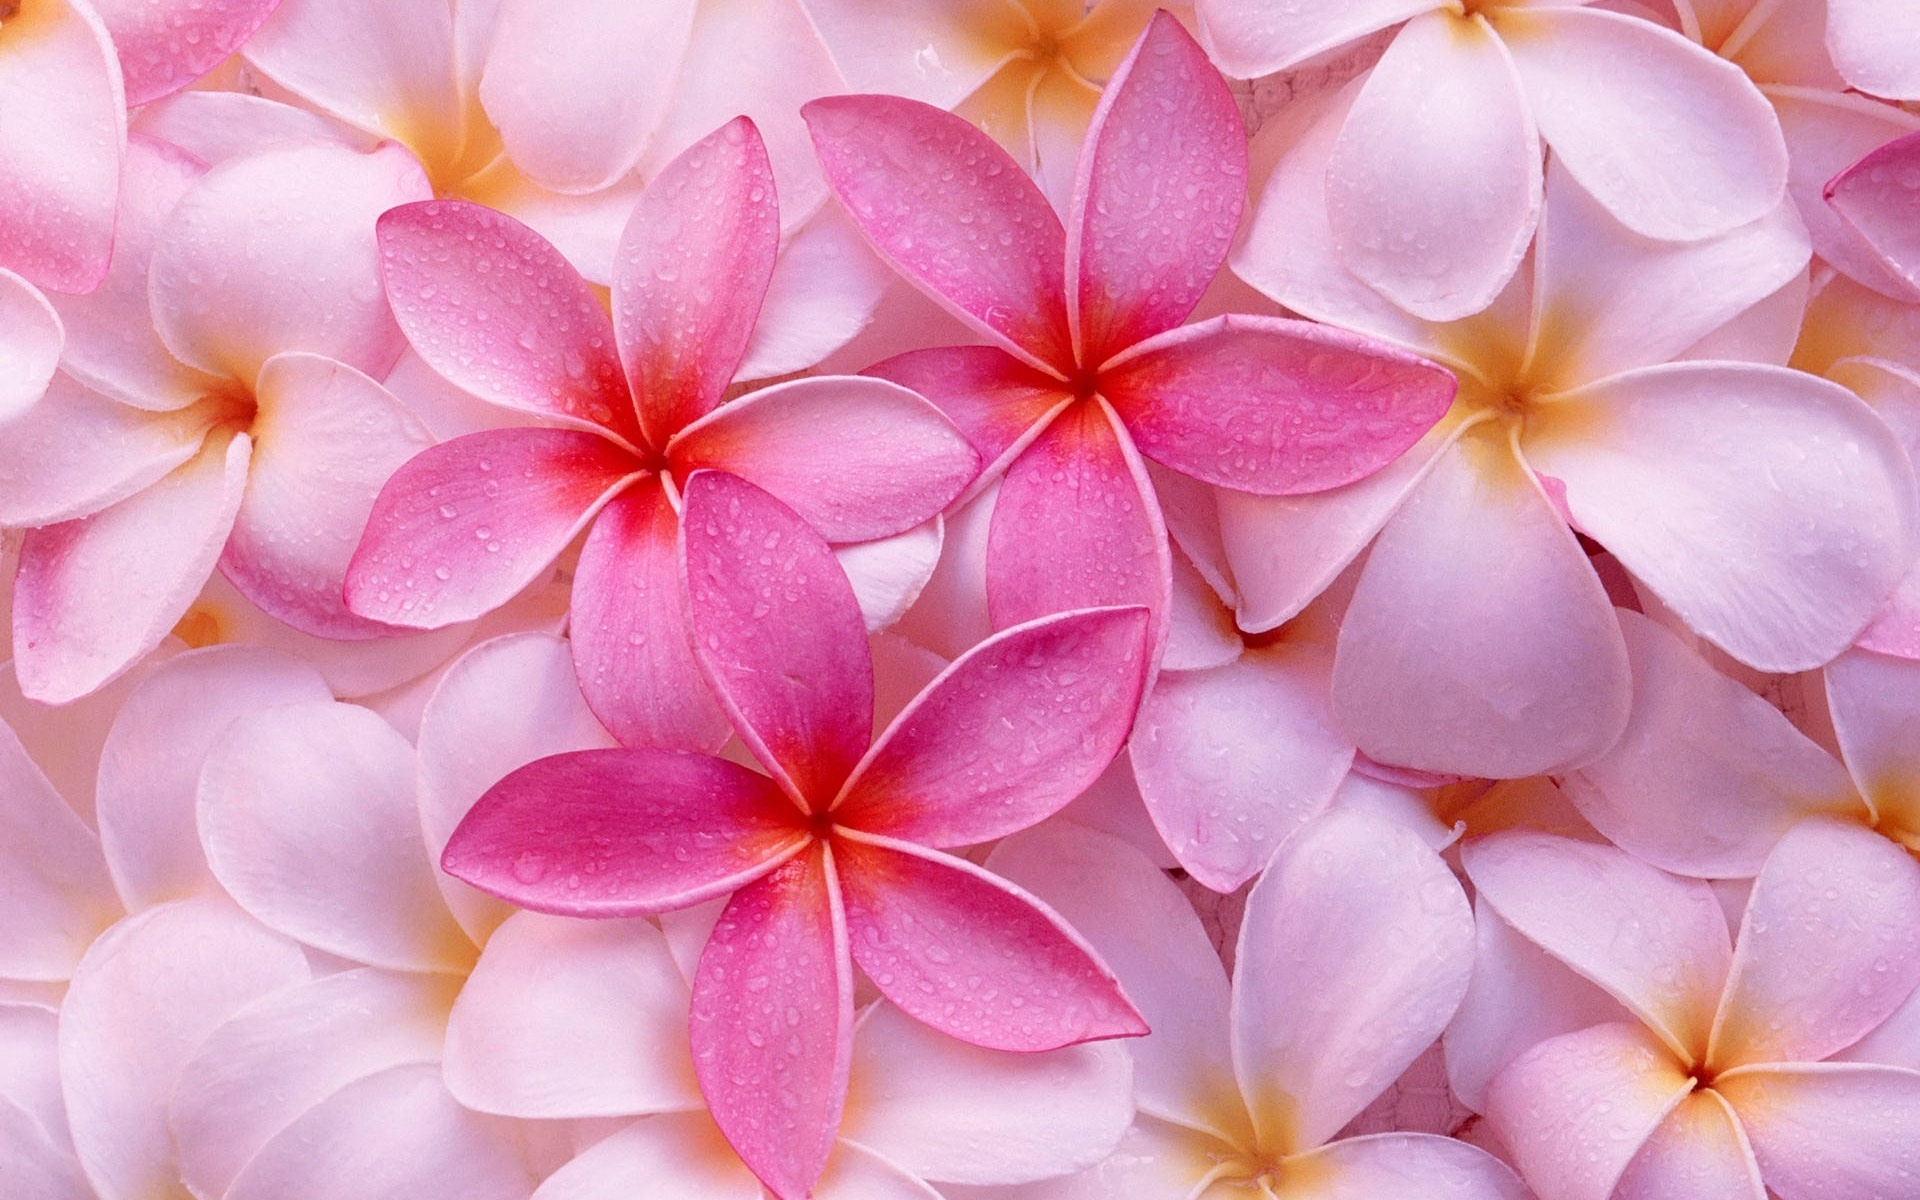 pink flowers image